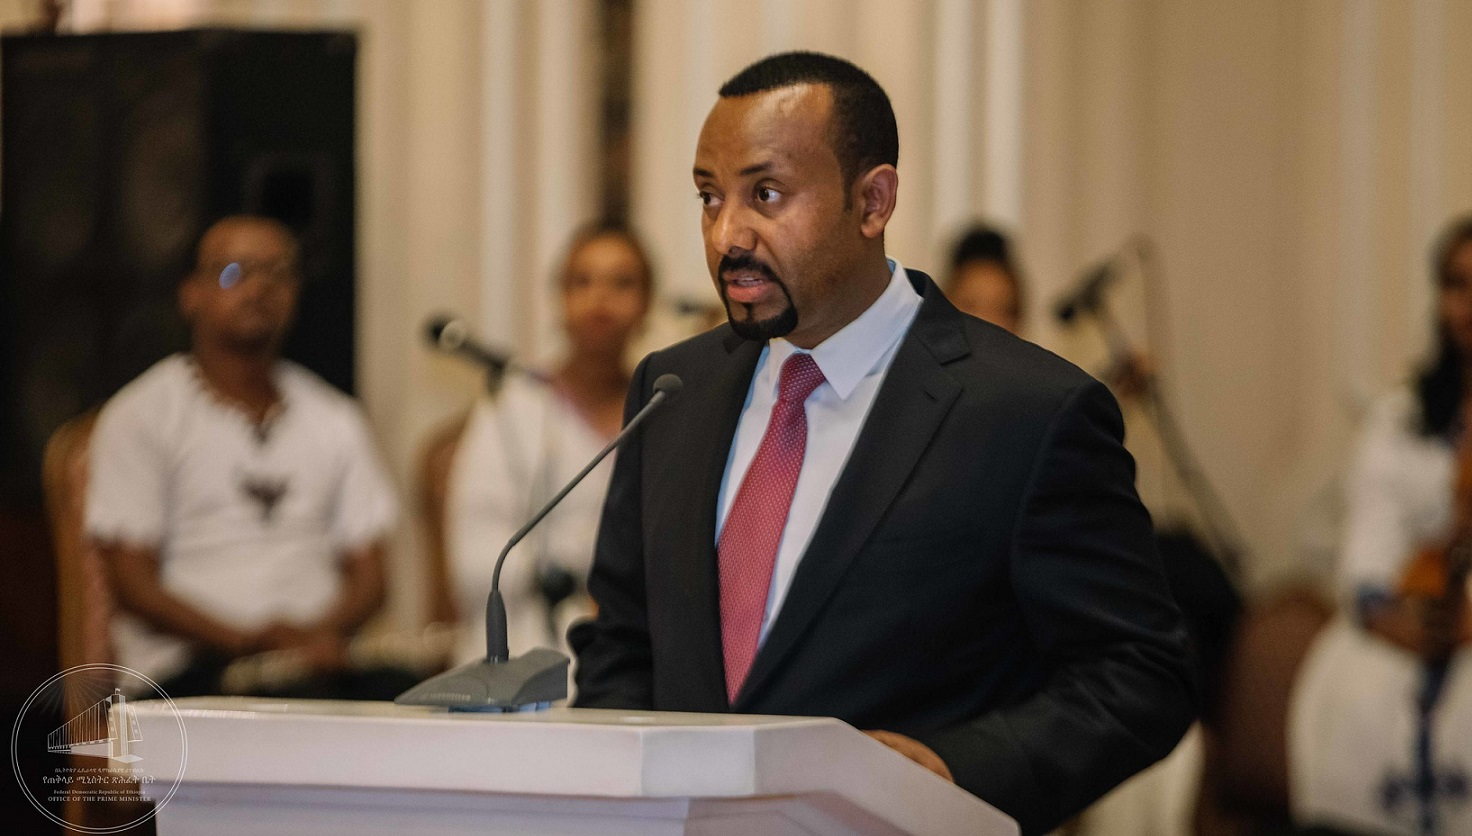 Prime Minister Abiy Ahmed at the African Union. Image credit: Office of the Prime Minister-Ethiopia@Flickr